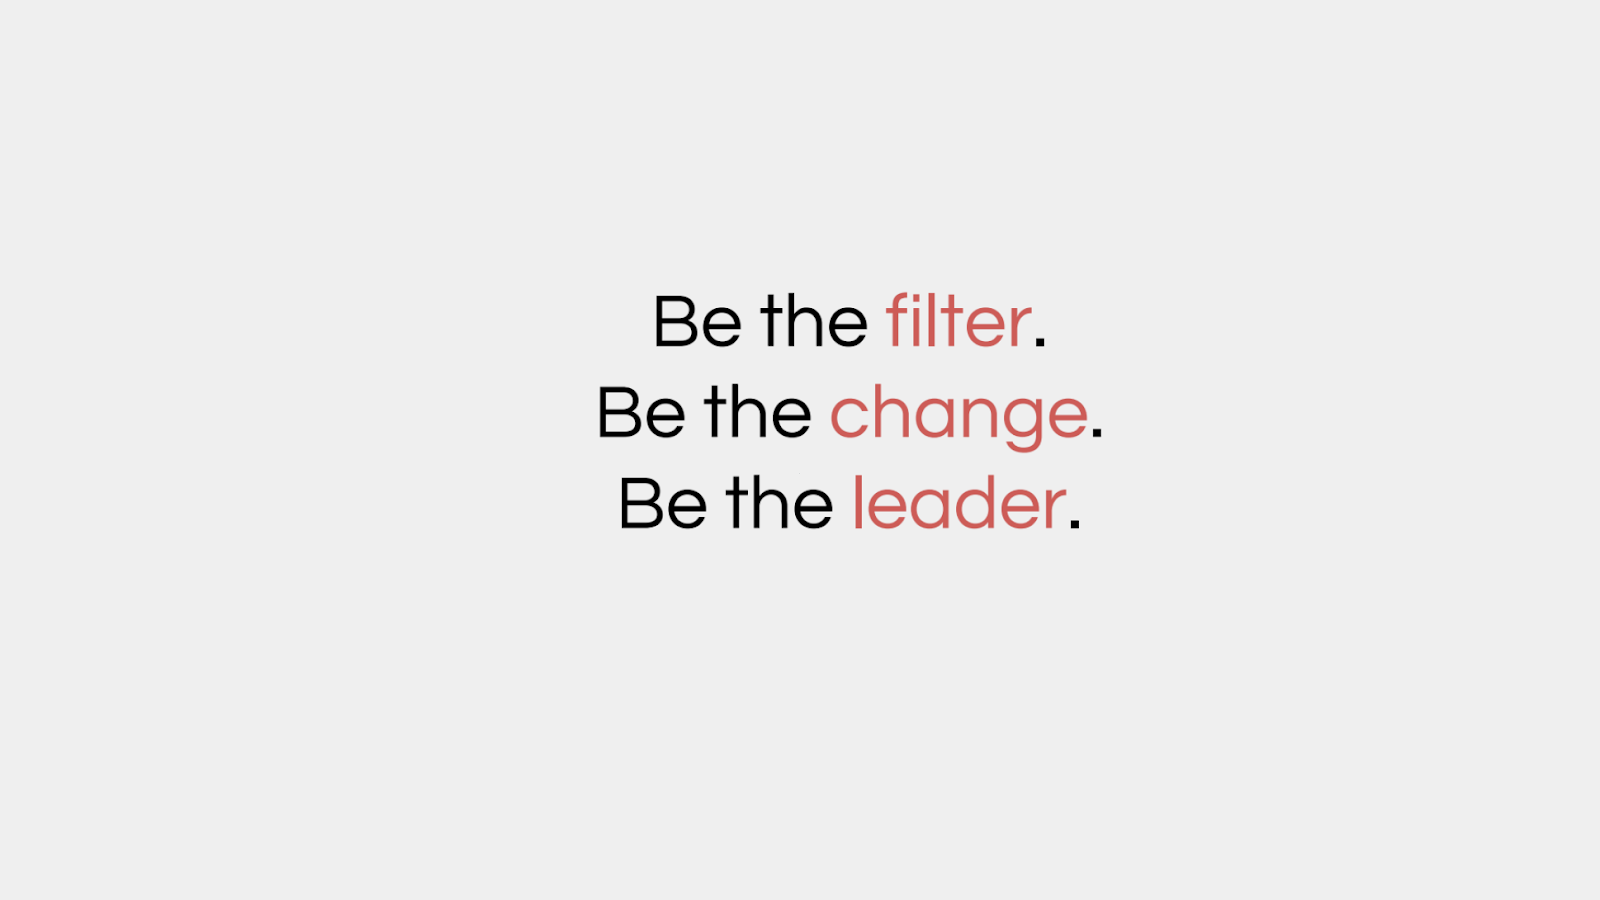 be the filter, be the change, be the leader